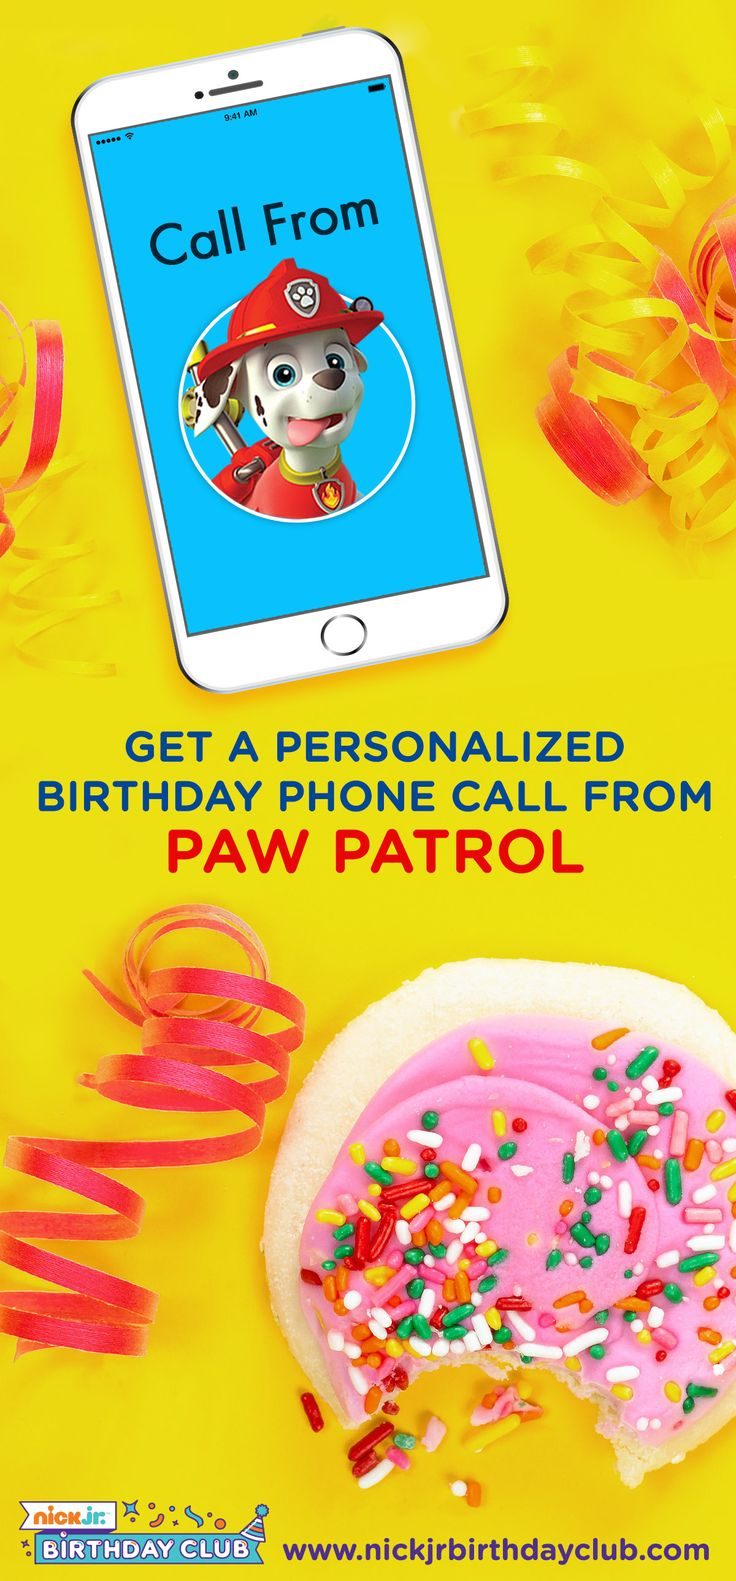 PAW Patrol is on a roll and making birthday phone calls to their fans with the Nick Jr. Birthday Club! Once you schedule your kid's personalized call from the pups, you'll get free printable party goods, party planning ideas and hacks, and everything else you'll need to make your preschooler's party a totally PAWsome success.